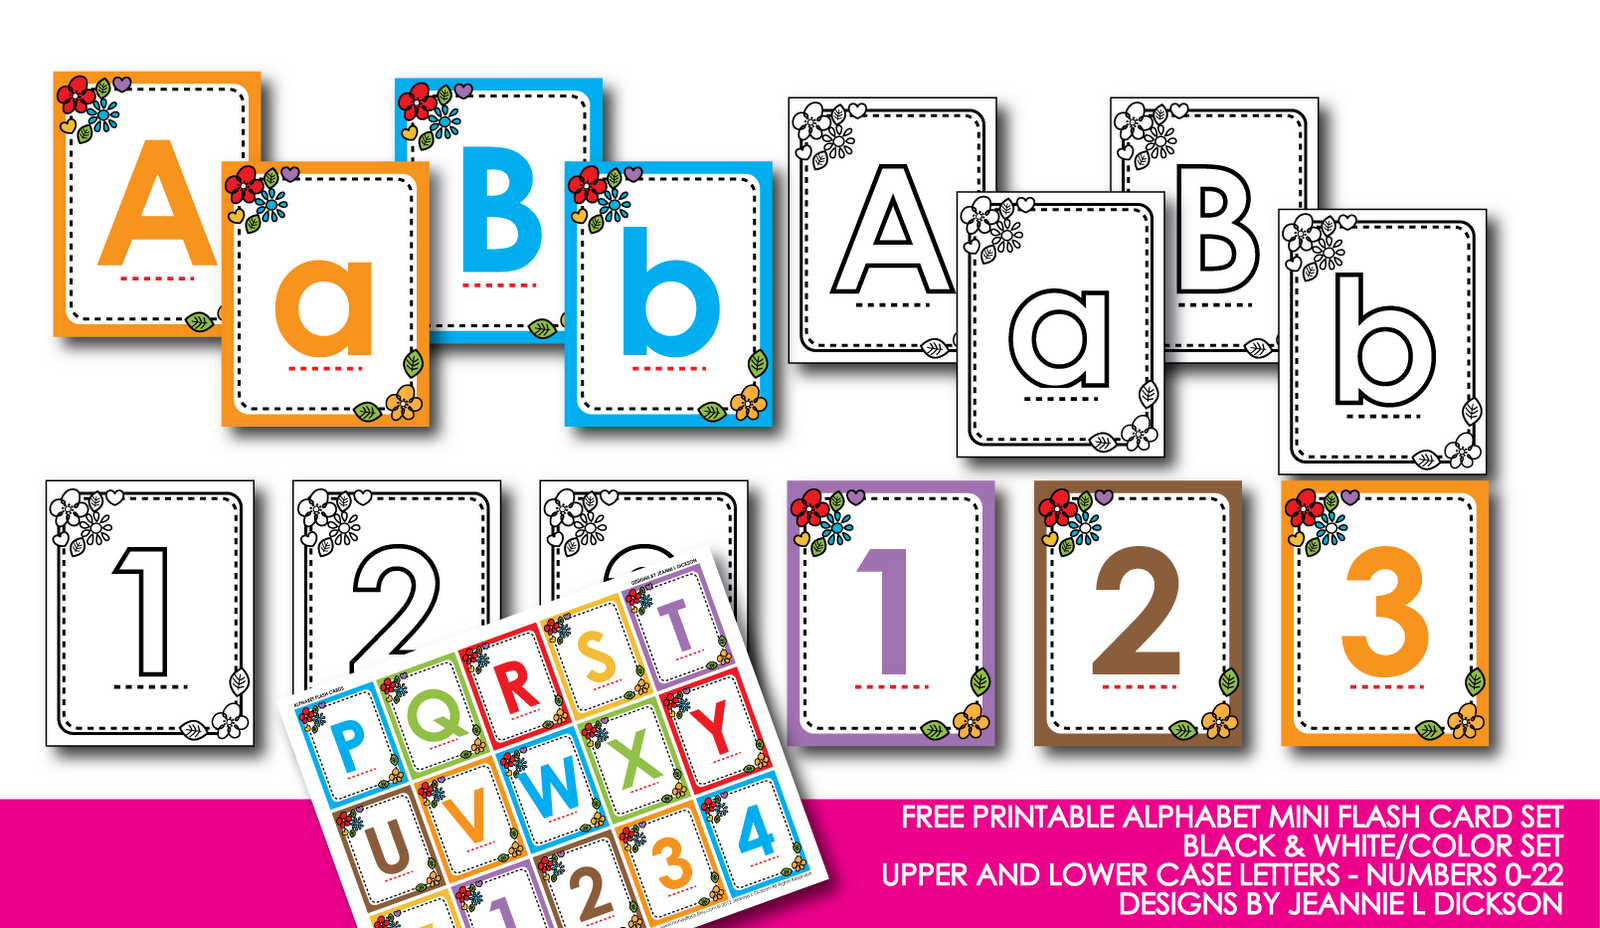 6 Images of Free Printable The Whole Flash Cards Alphabet Preschool